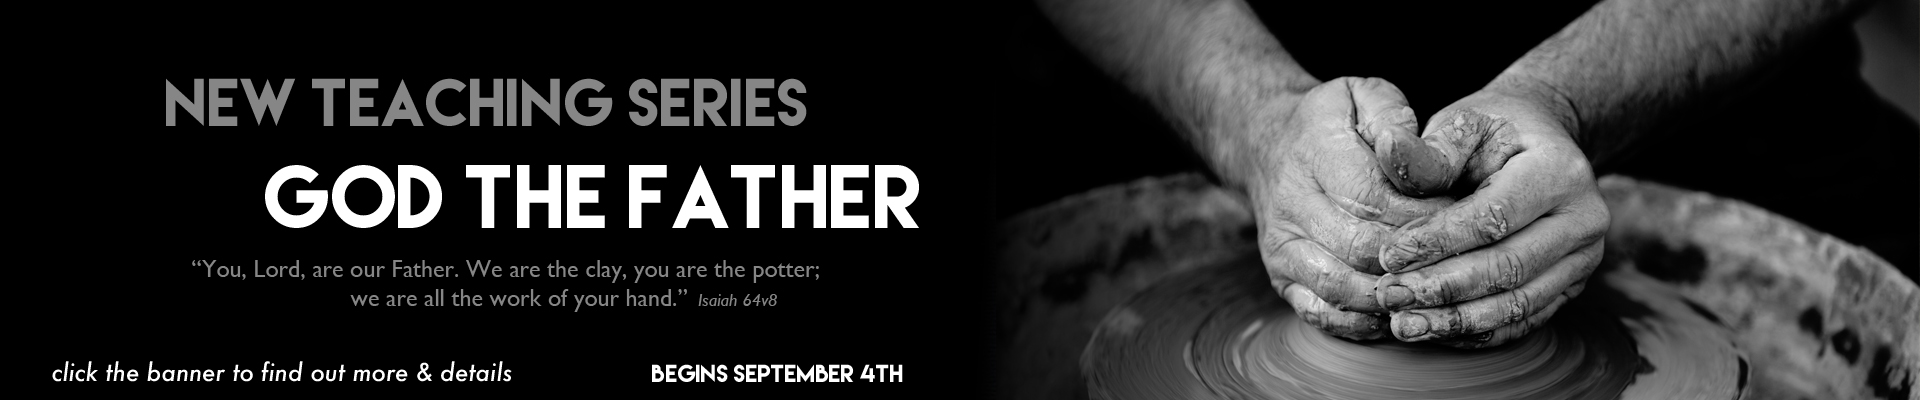 New-teaching-series-god-father-sep16